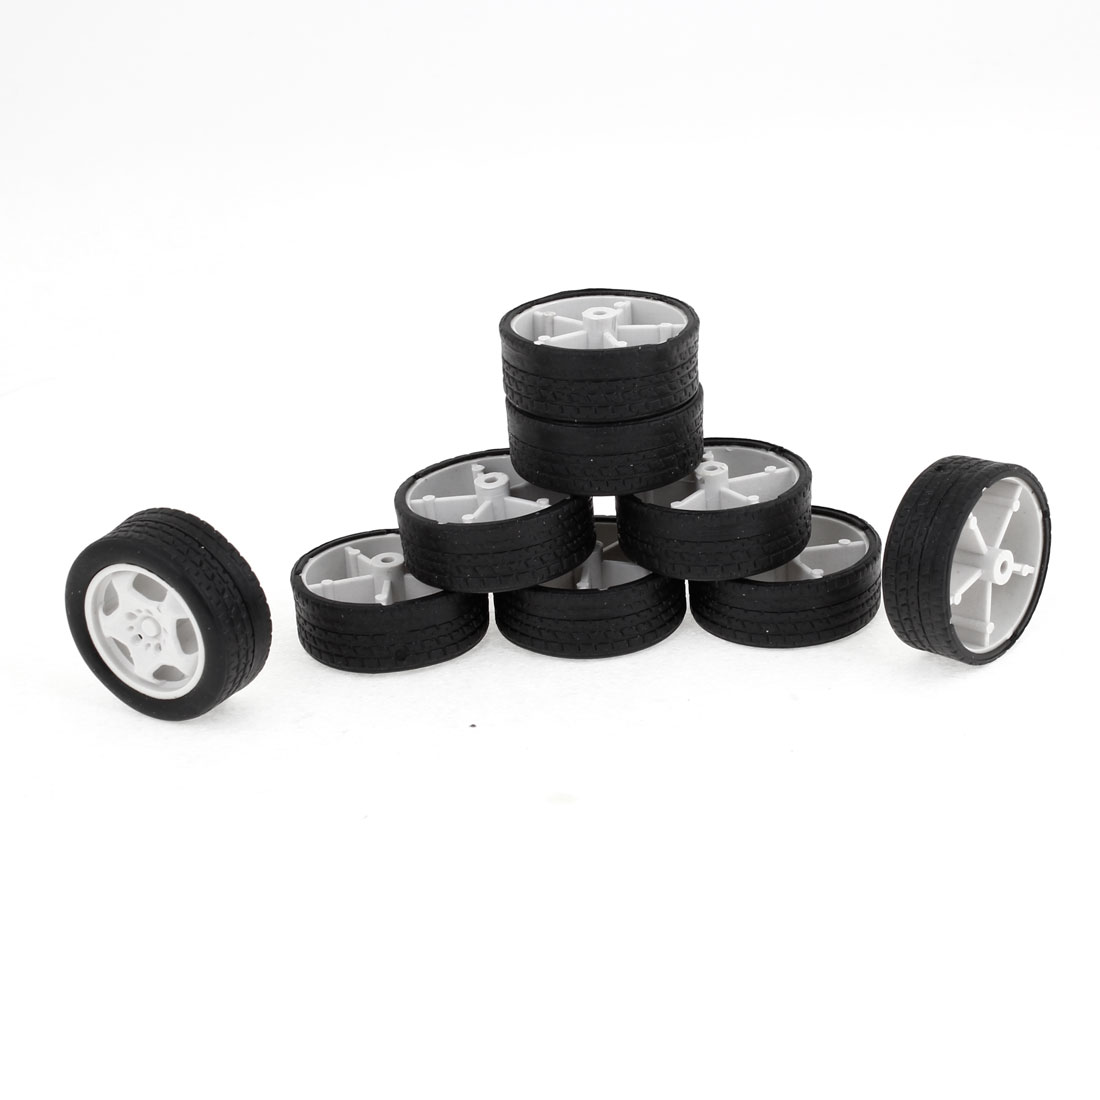 Children Toy Car Bus Truck Vehicle 34mm Dia Rubber Roll Wheels Replacement 9PCS